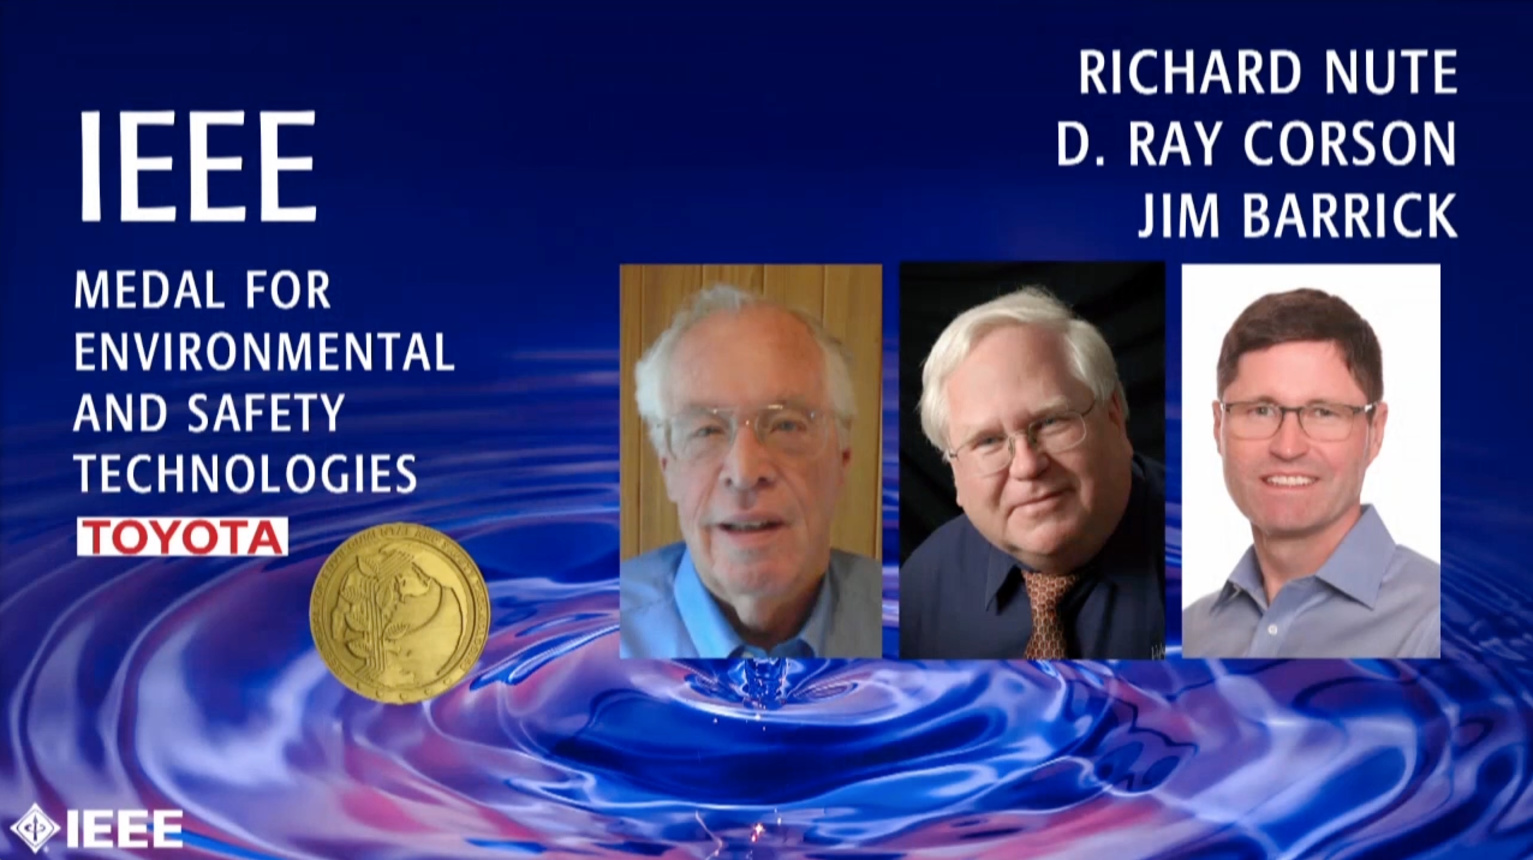 Richard Nute, D. Ray Corson, Jim Barrick - IEEE Medal for Environmental and Safety Technologies, 2019 IEEE Honors Ceremony